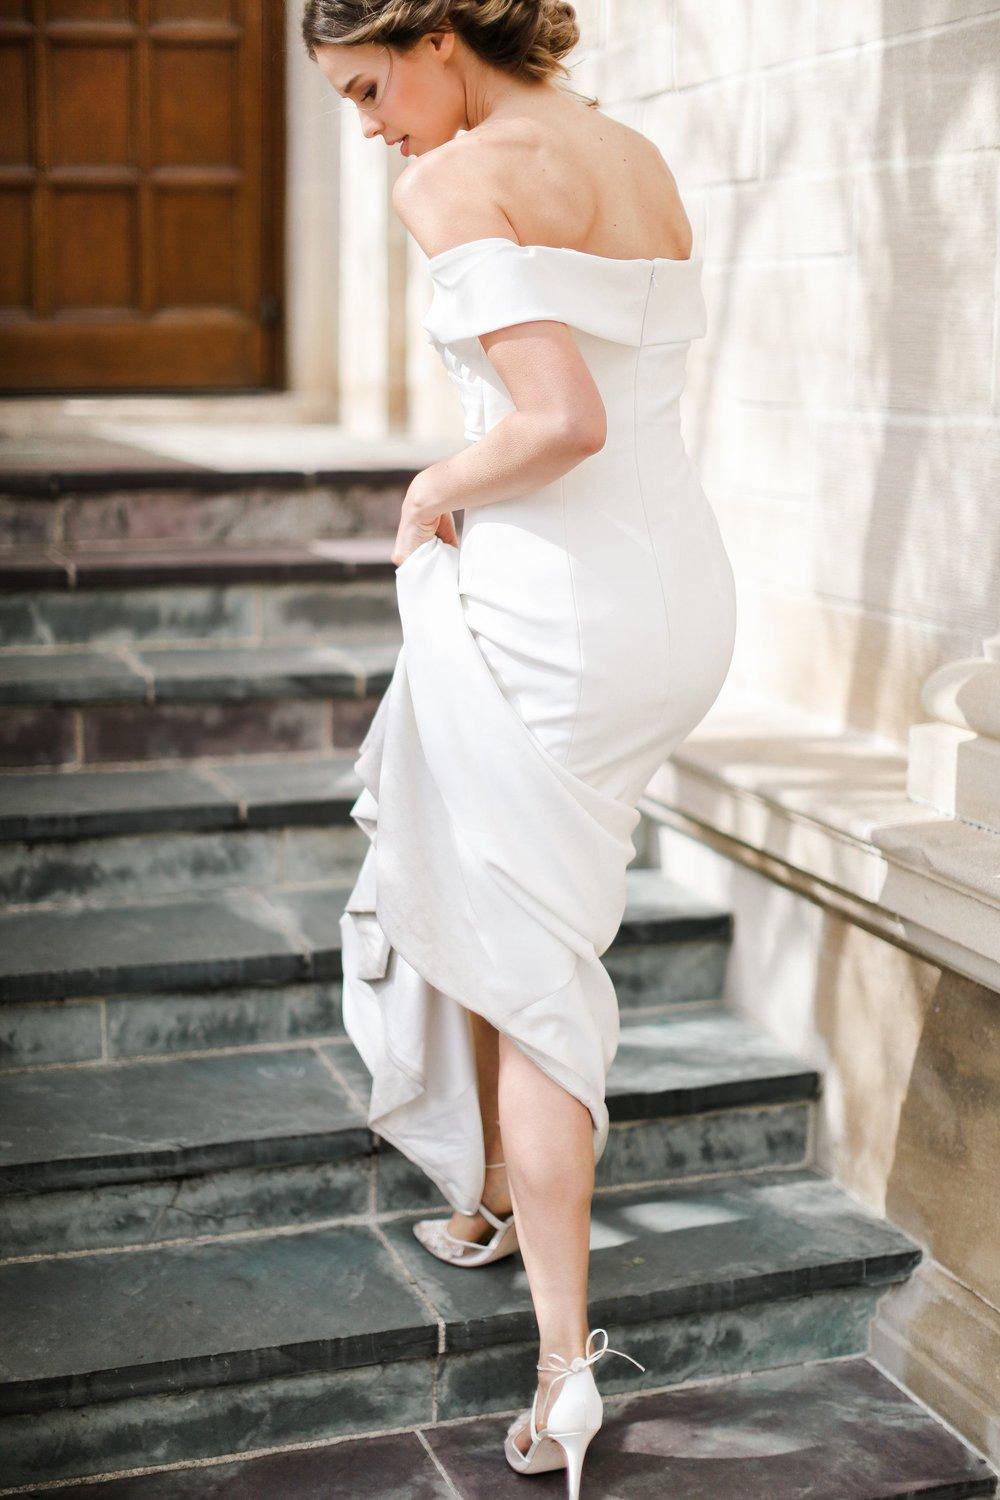 bride-walking-up-the-stairs-holding-gown